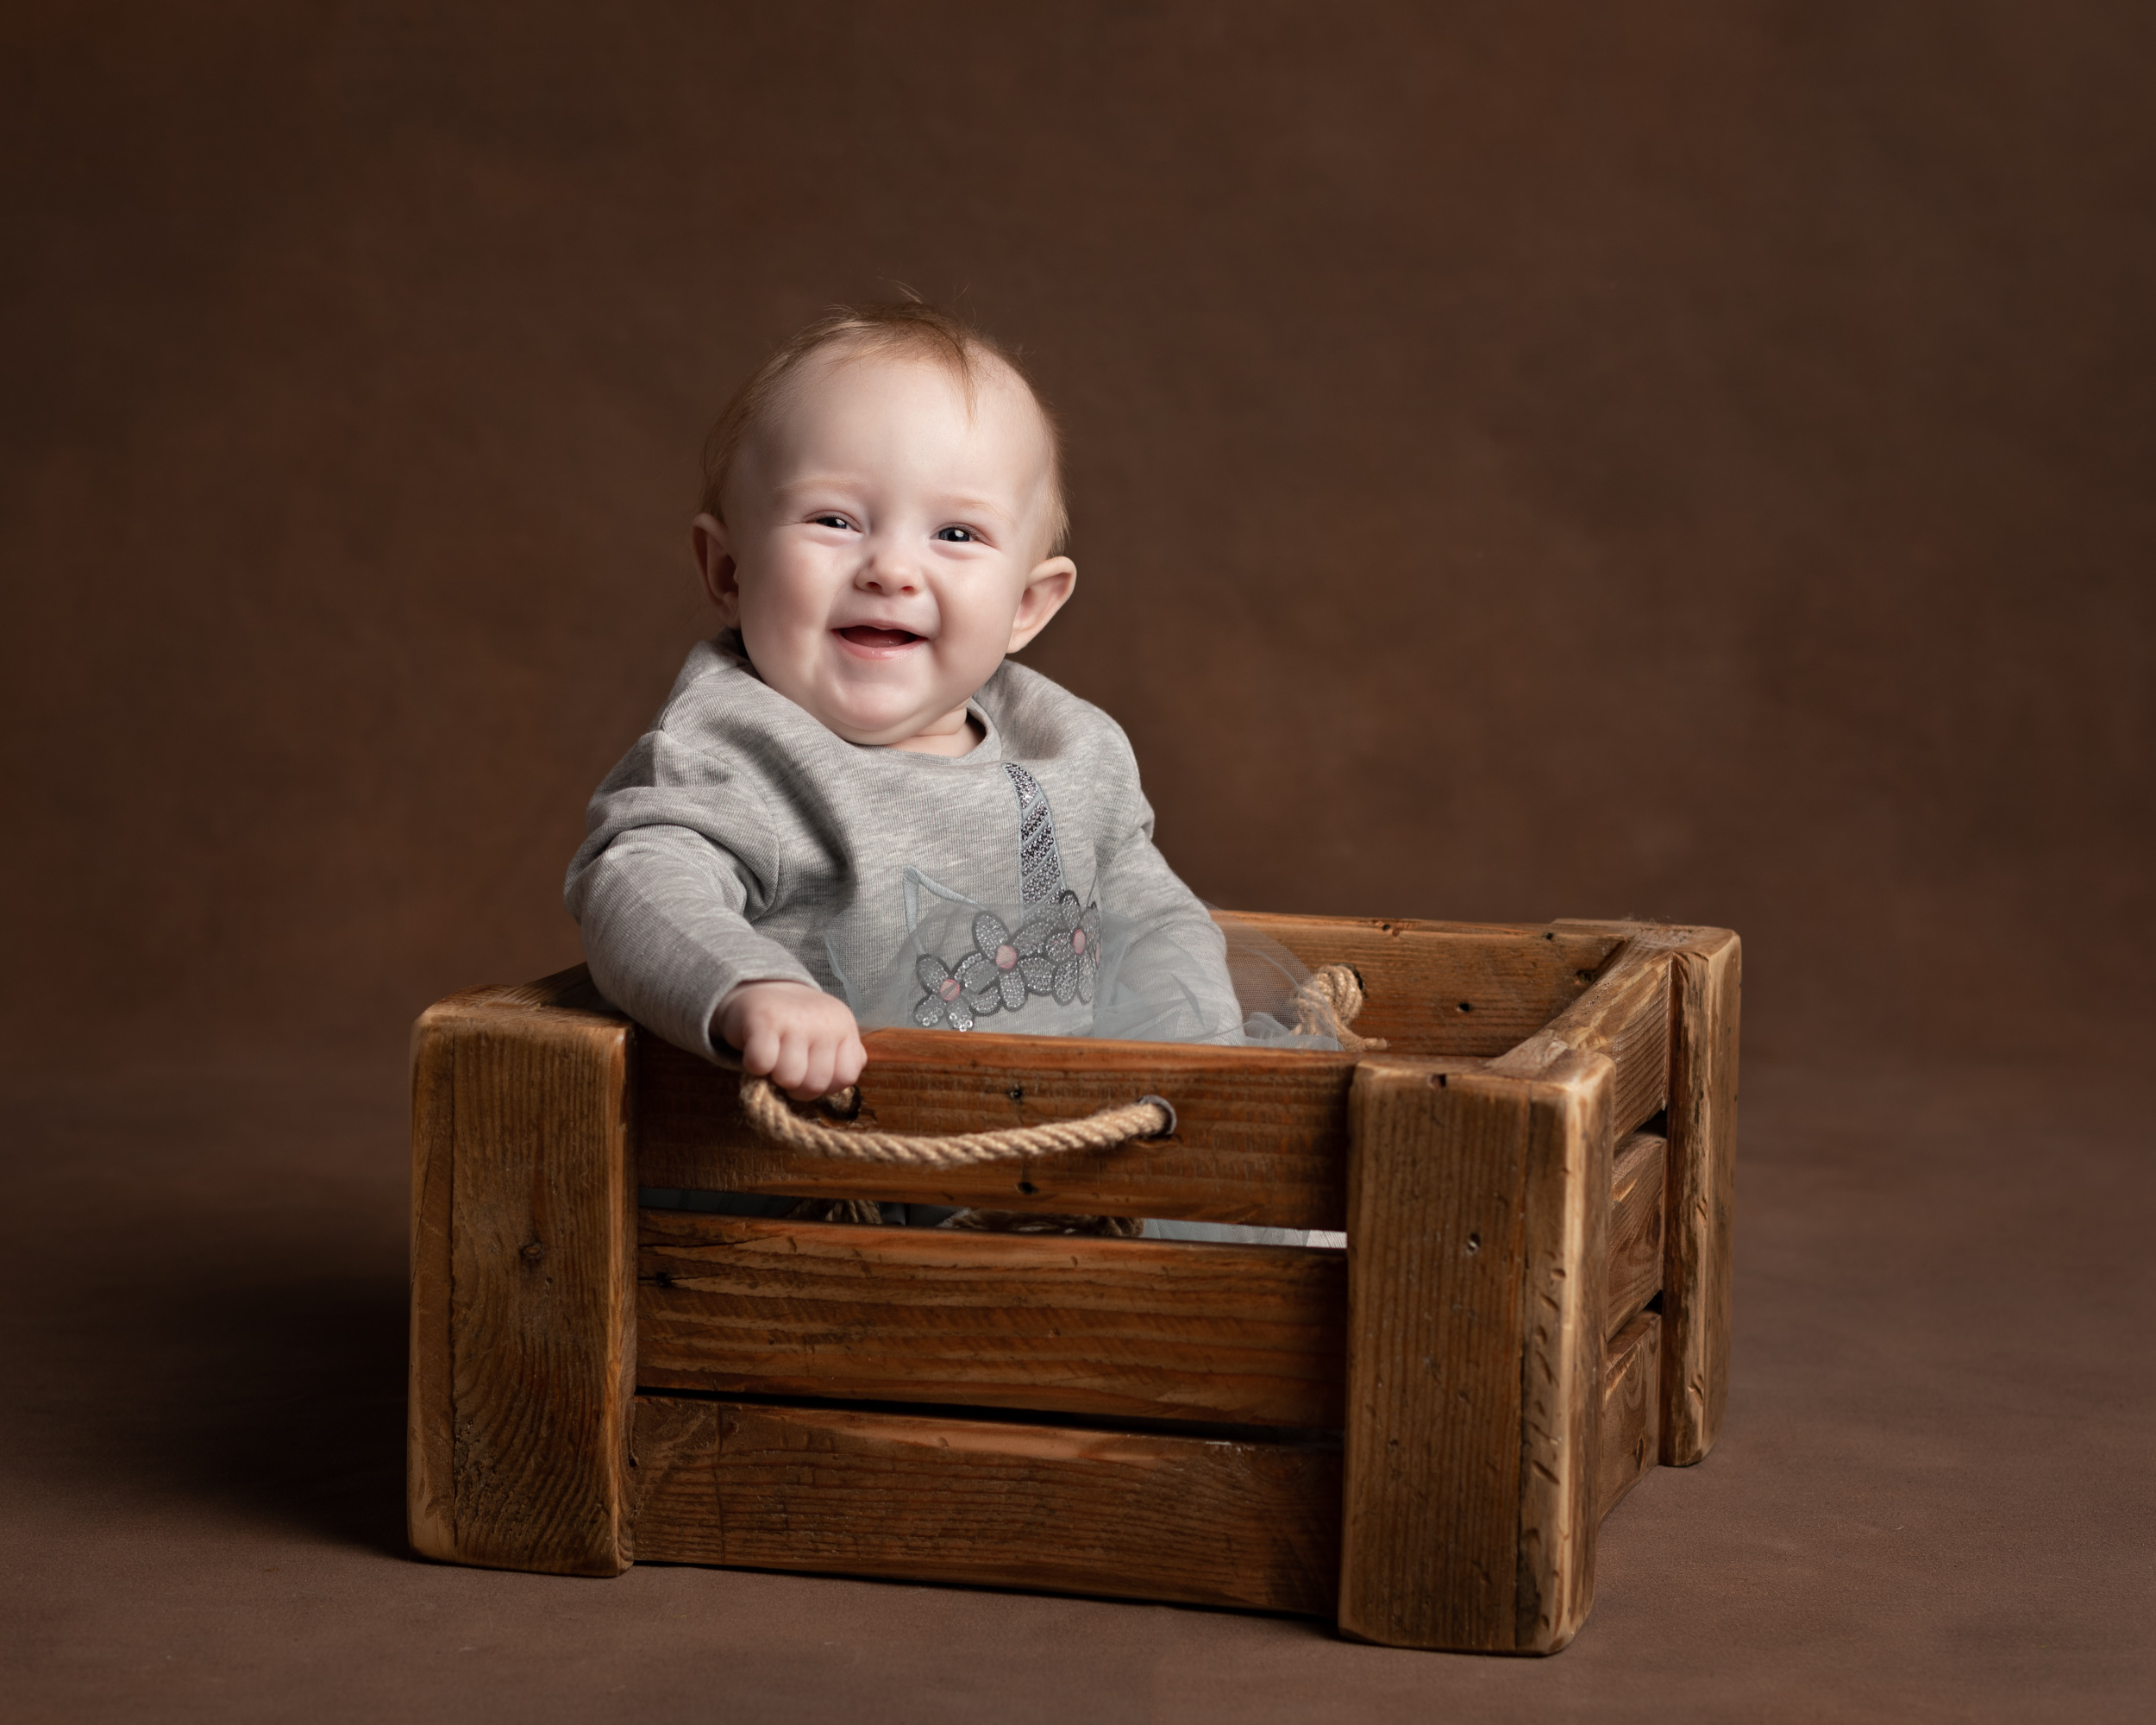 6 month old baby sitting in a crate during her Family Portrait photoshoot in Cheshire